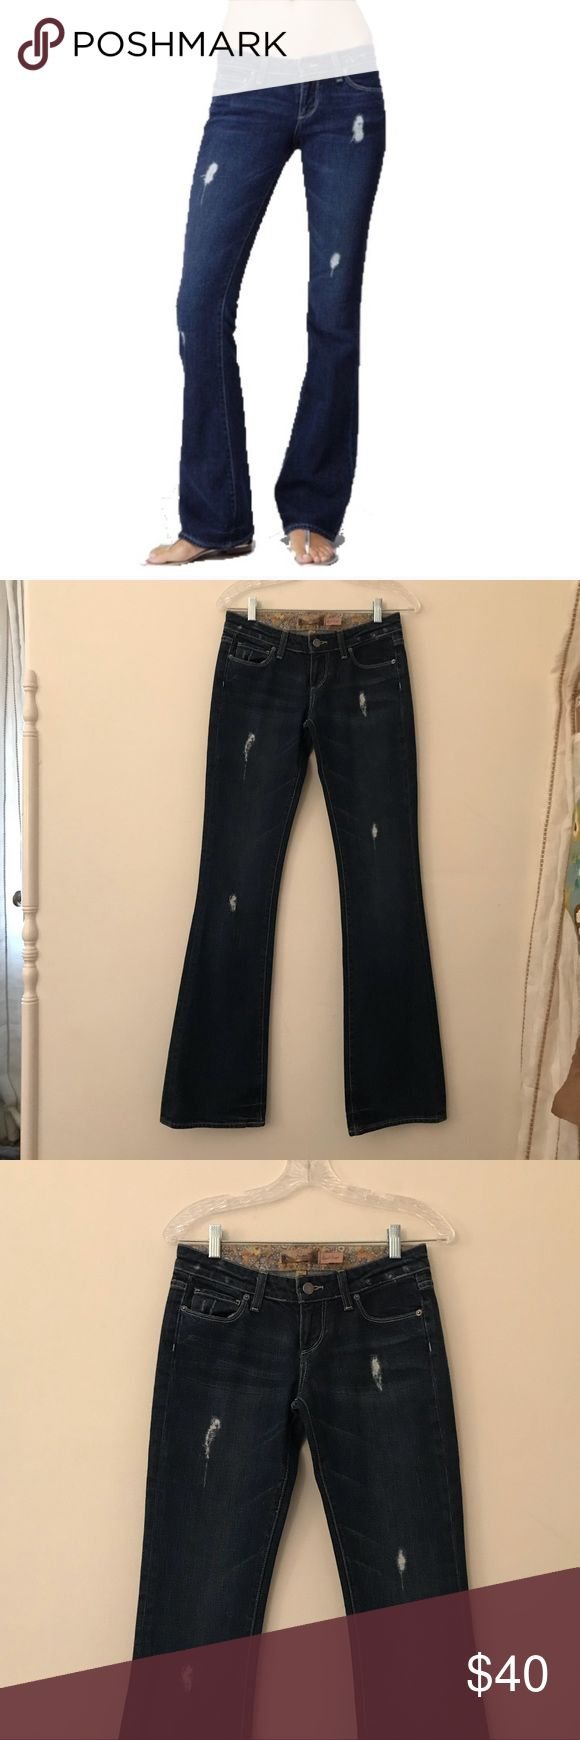 """Paige Premium Denim Laurel Canyon Jeans Paige Premium Denim Laurel Canyon Jeans in Shipwreck. The zipper was repaired so it is not the manufactory zipper. Jeans are in perfect condition. 98% Cotton 2% Stretch. 7.5"""" Rise. 34"""" Inseam. Paige Jeans Jeans Flare & Wide Leg"""